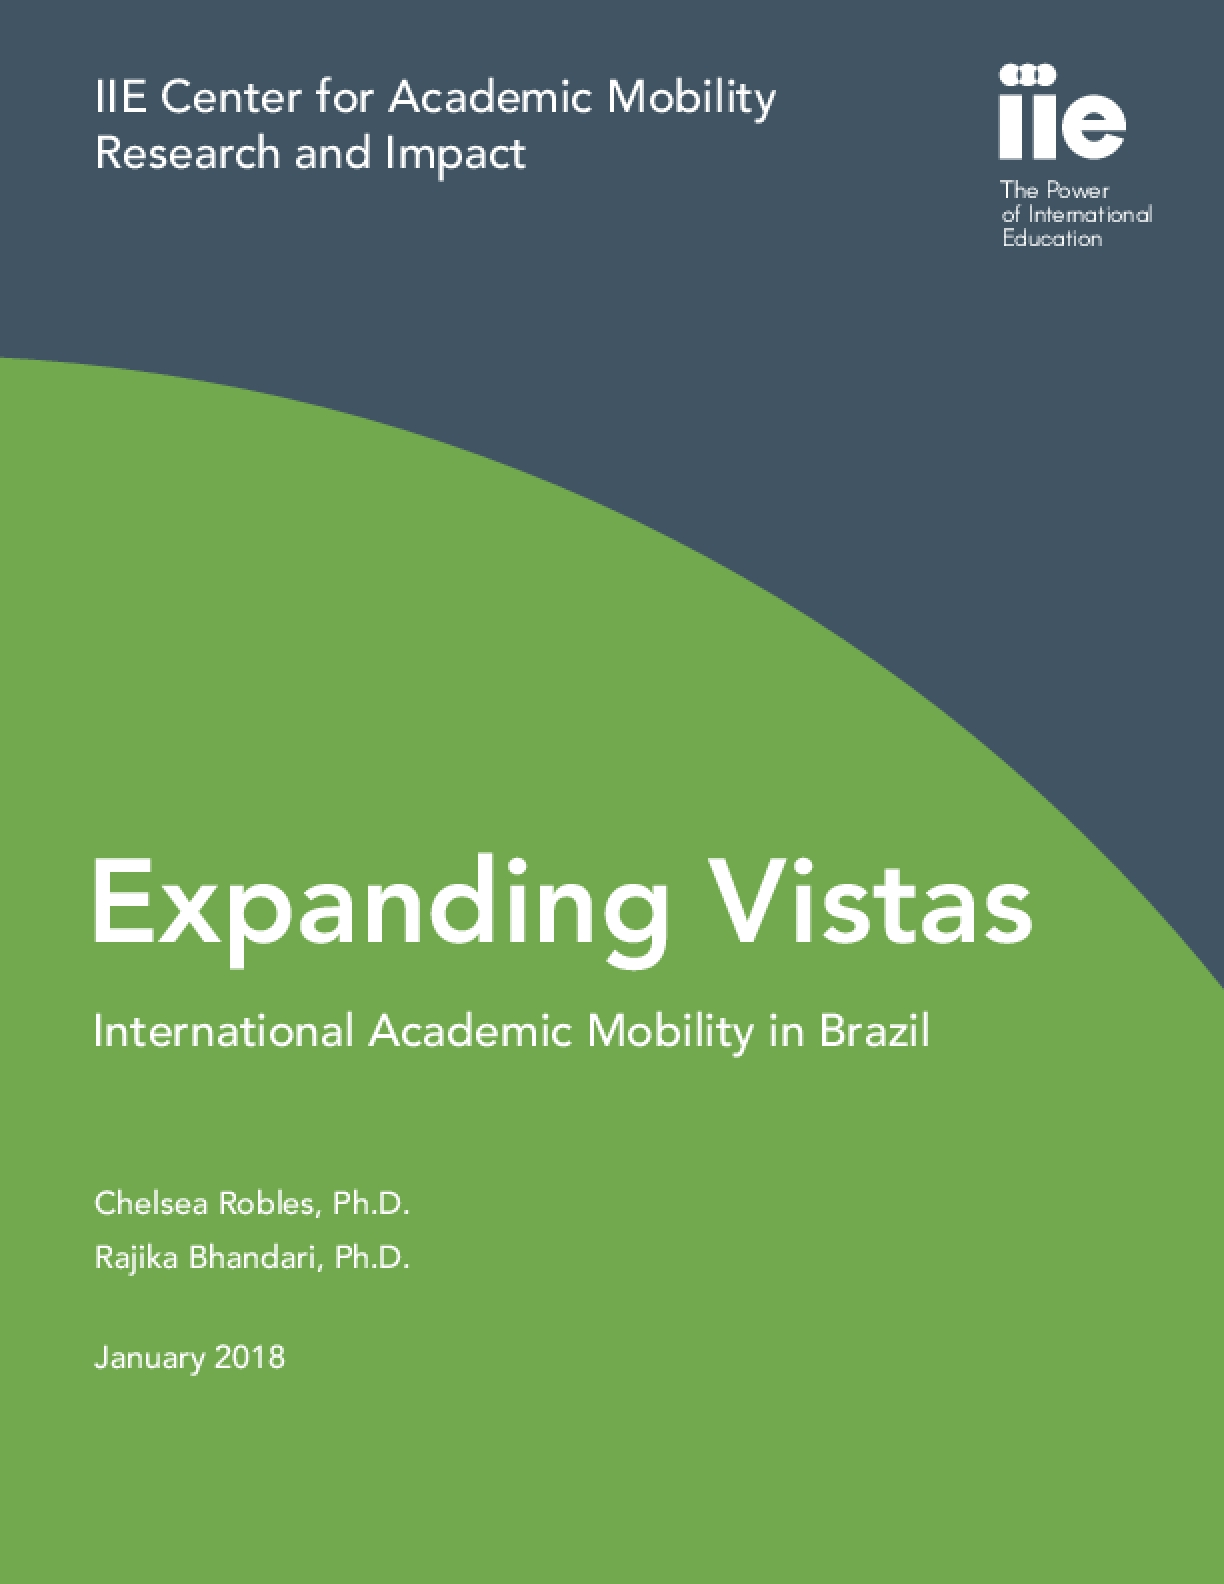 Expanding Vistas: International Academic Mobility in Brazil